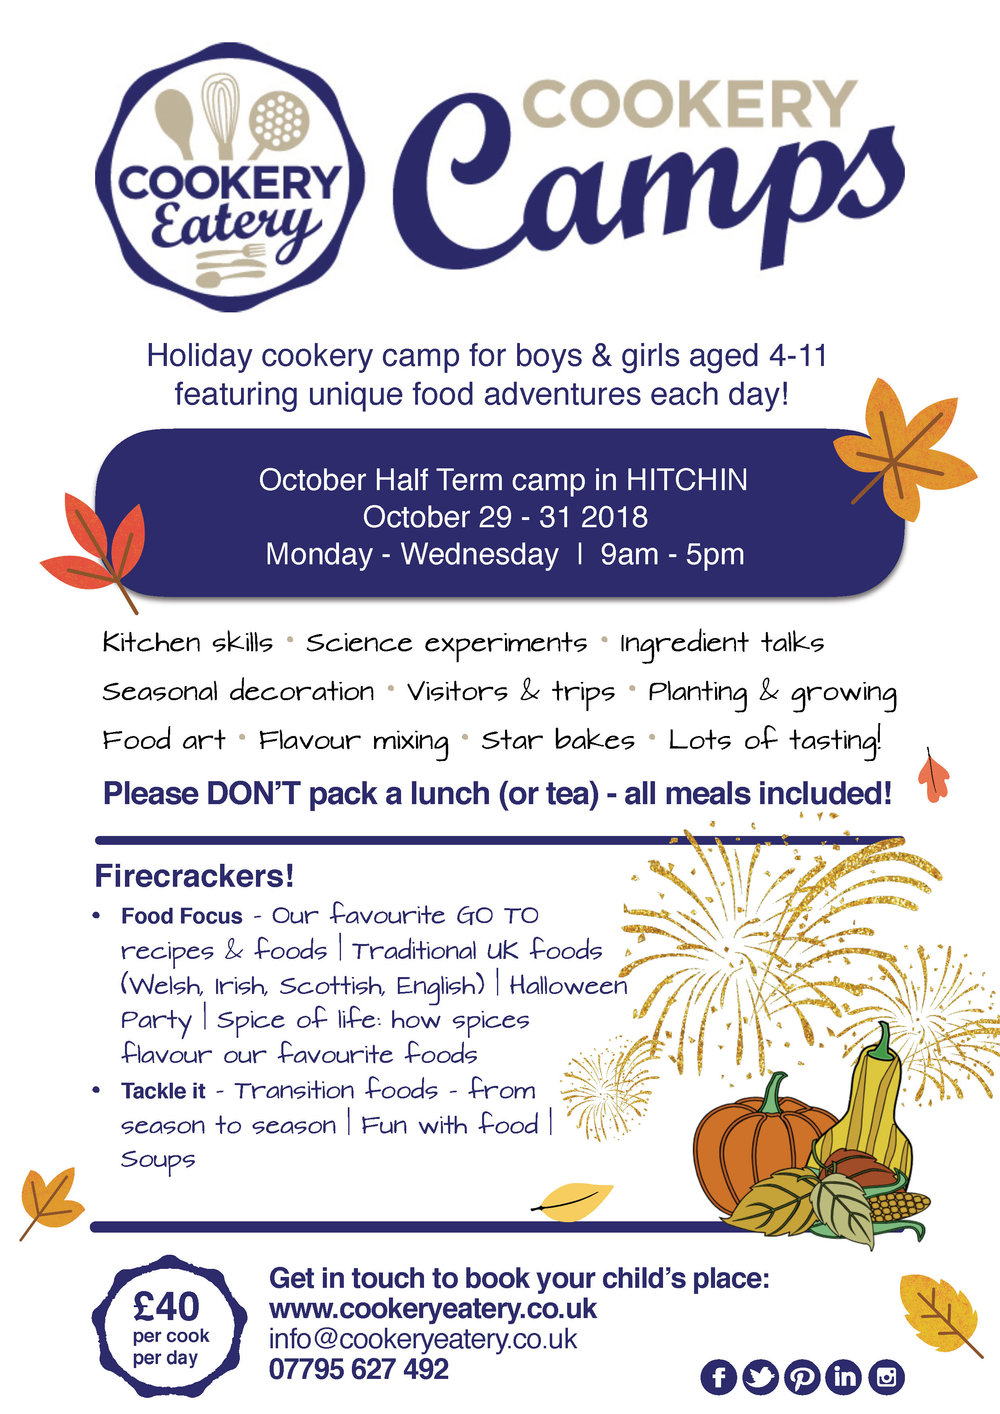 Hitchin - October 2018 Camp flyer.jpg